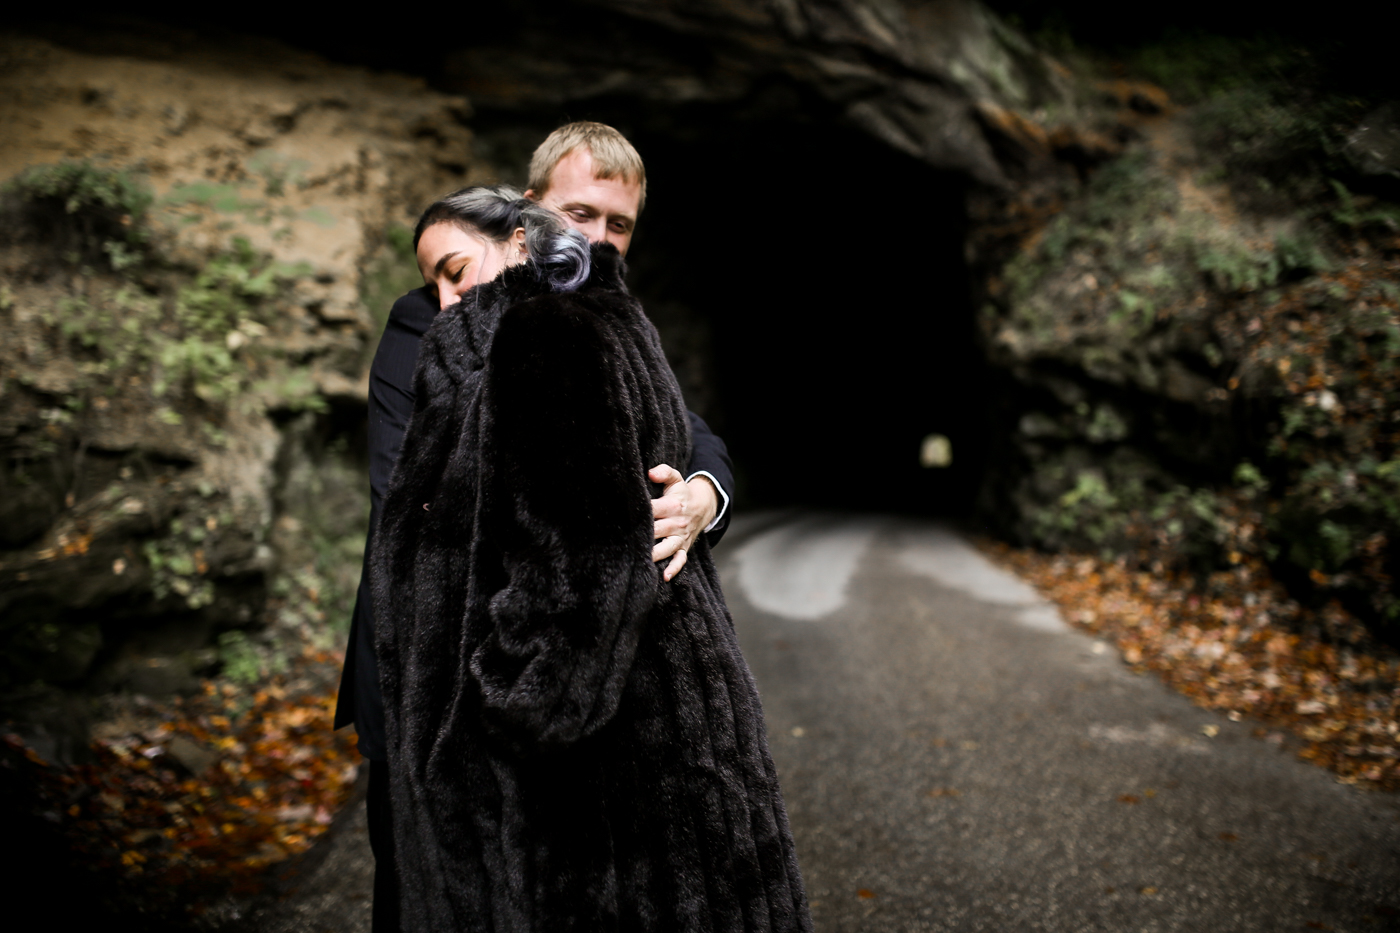 Red-River-Gorge-Nada-Tunnel-Kentucky-Engagement-Elopement-16.jpg